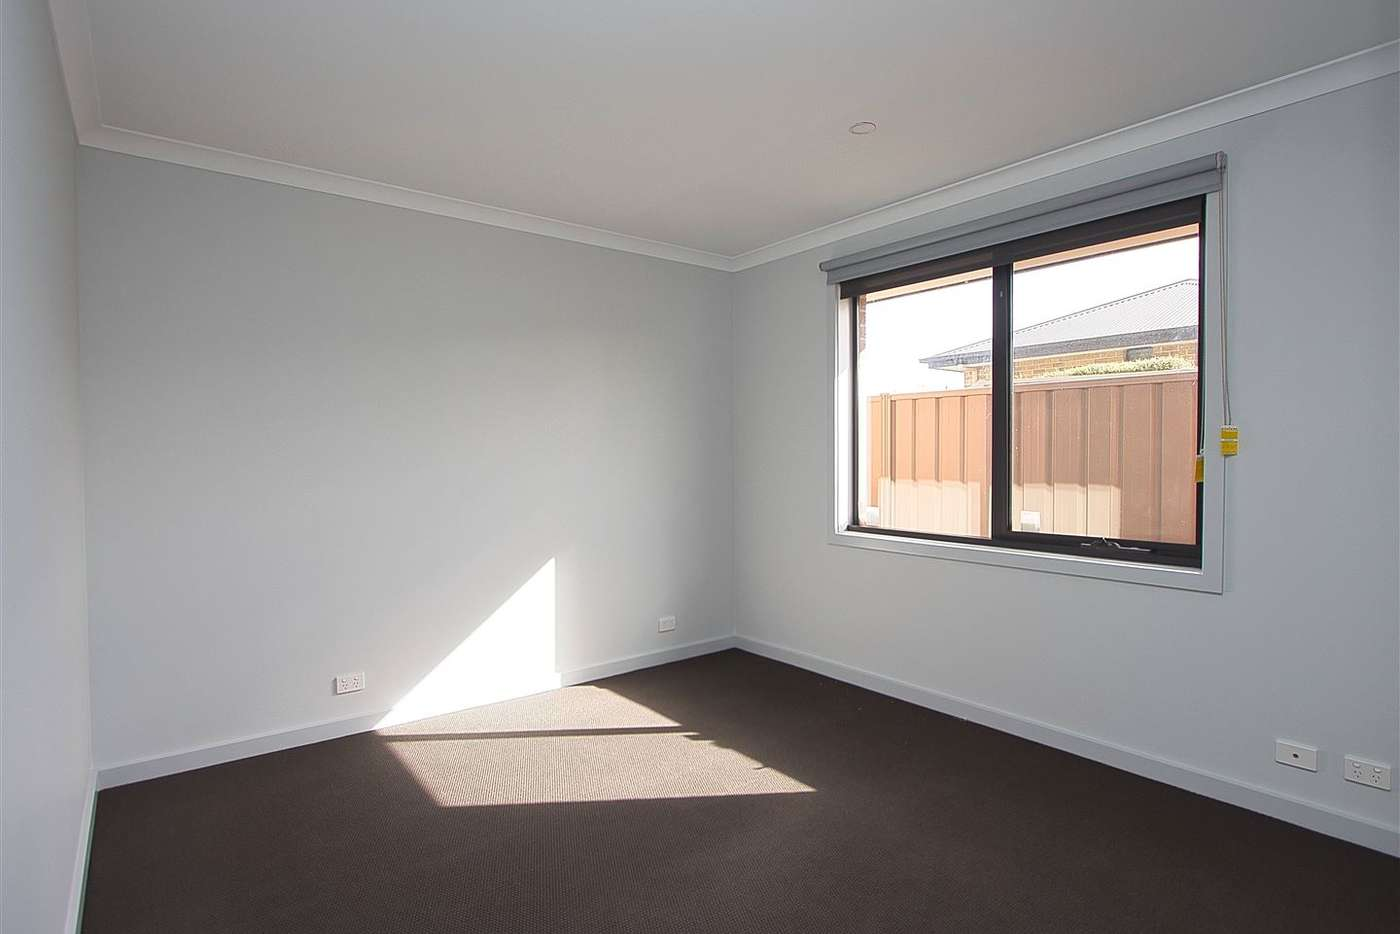 Sixth view of Homely house listing, 20A Bellview Court, Mansfield VIC 3722